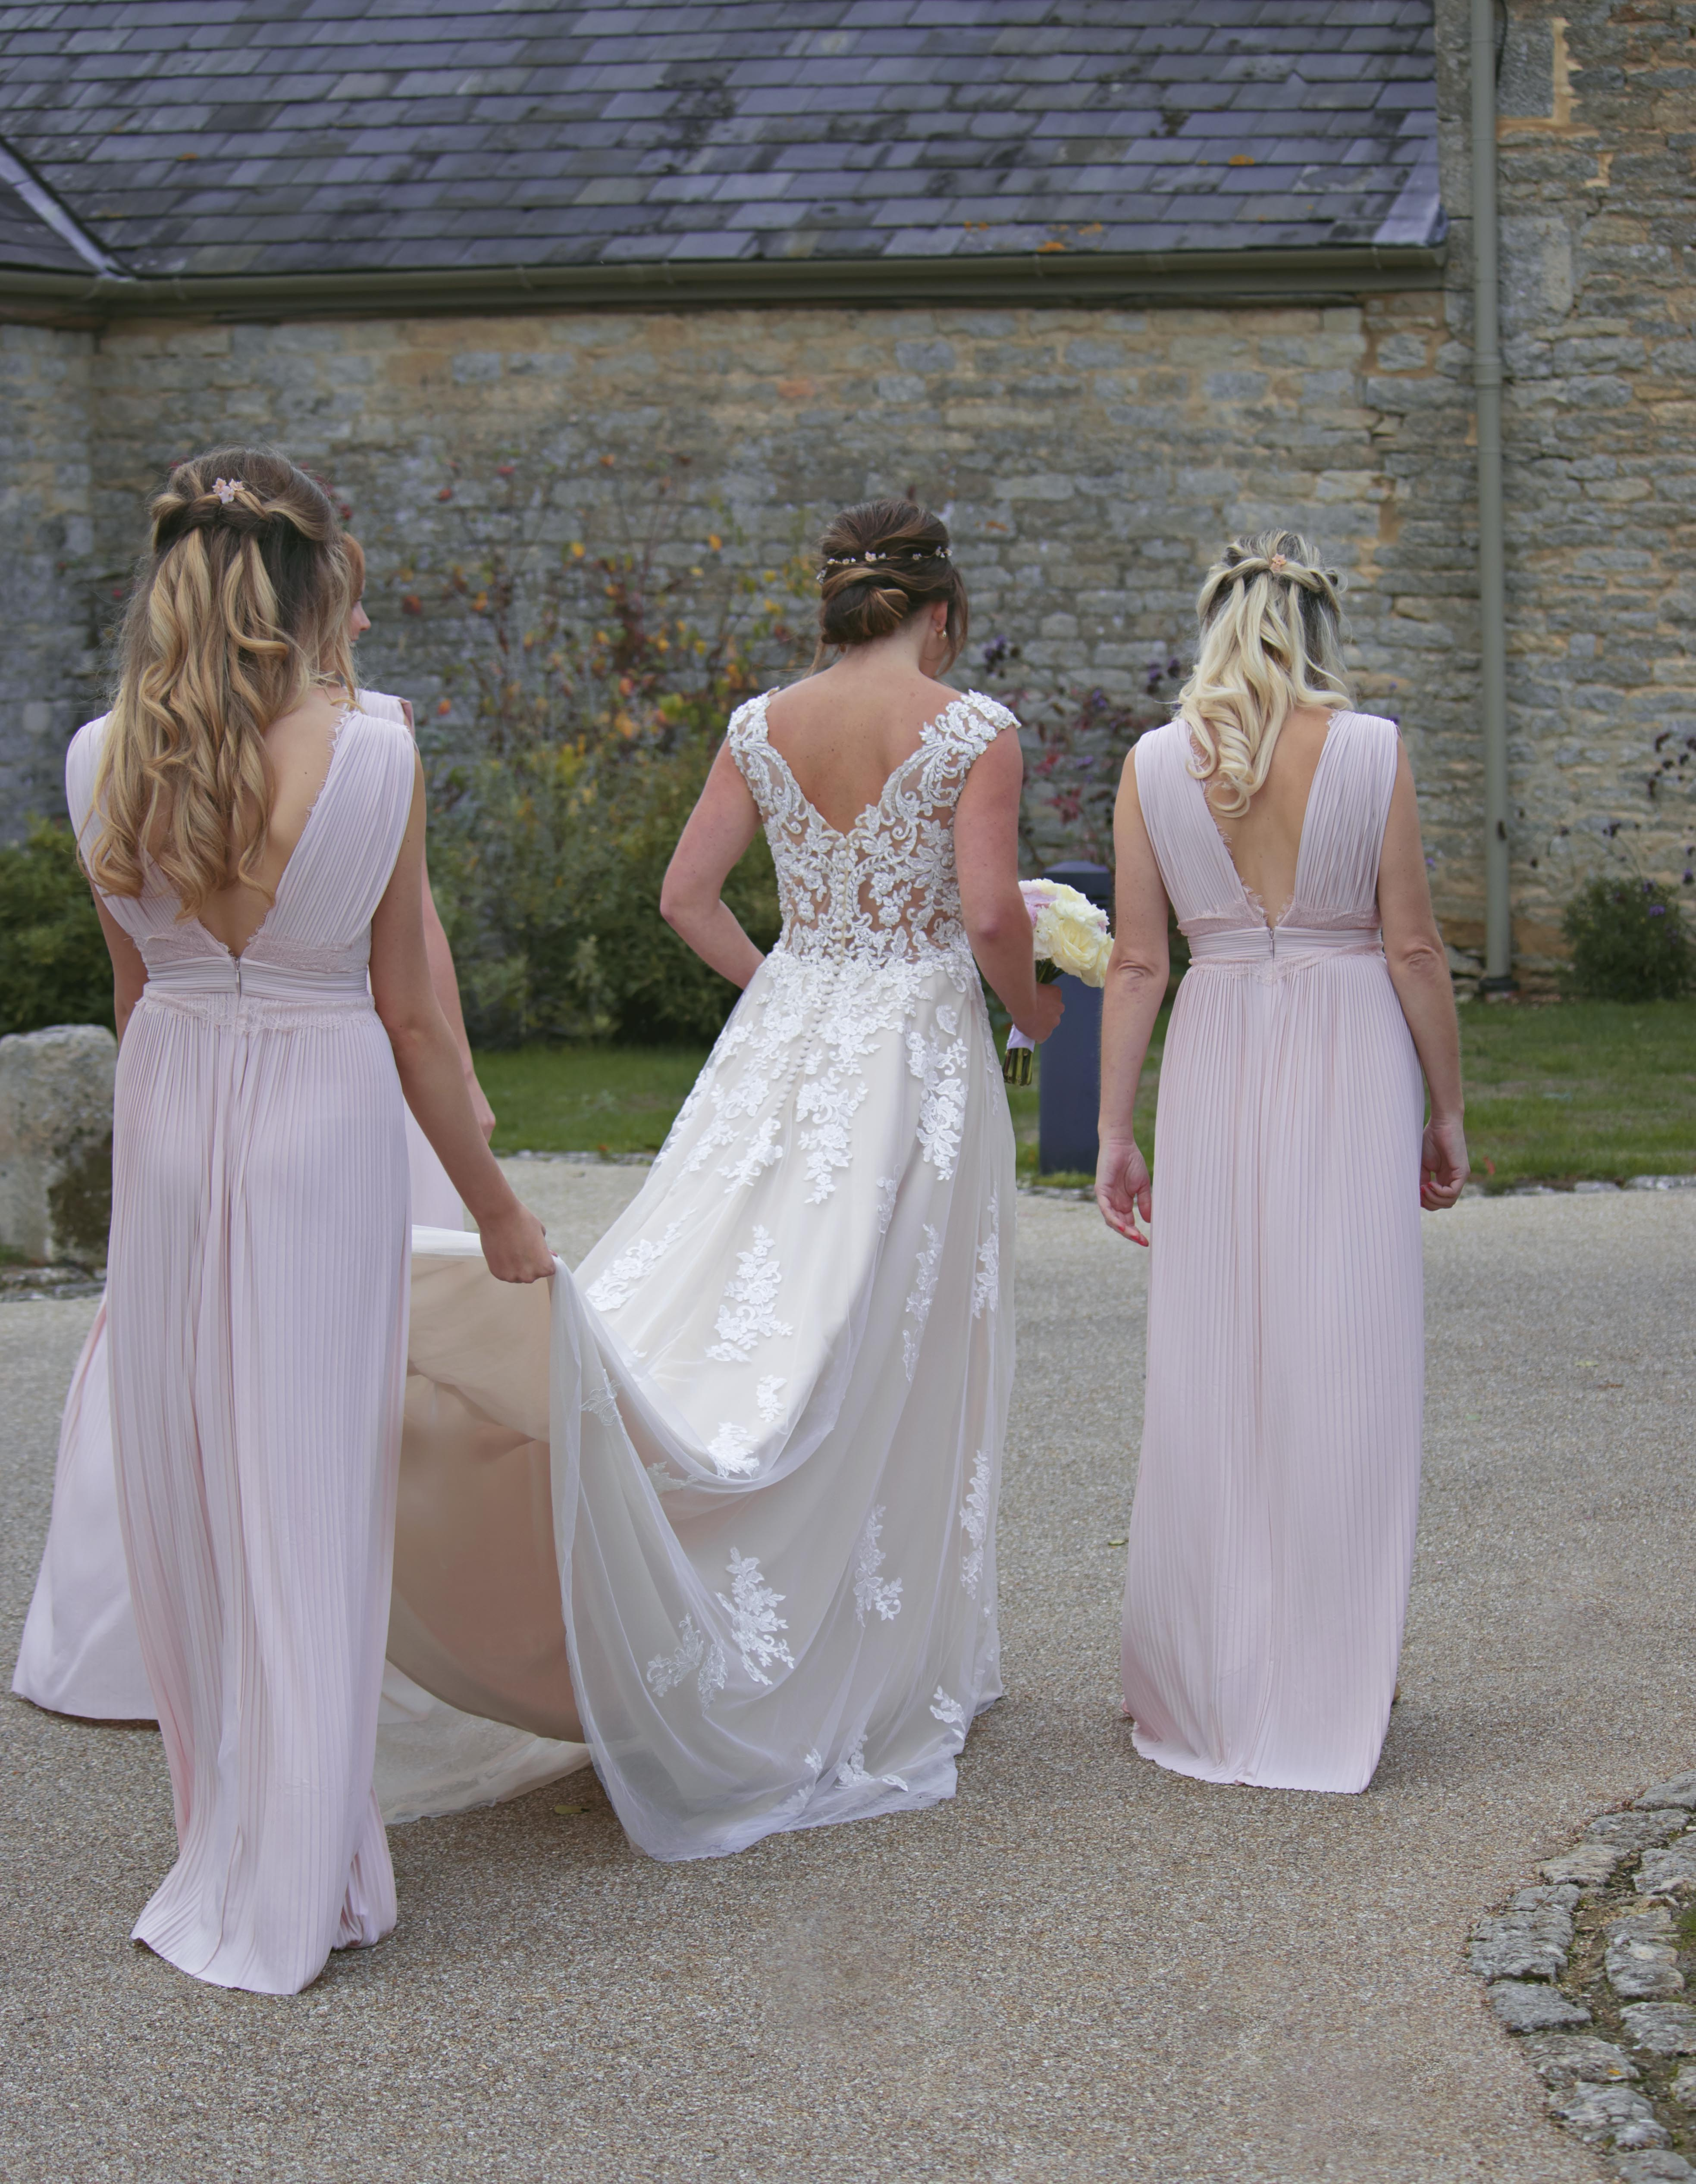 Walking with my Bridesmaids